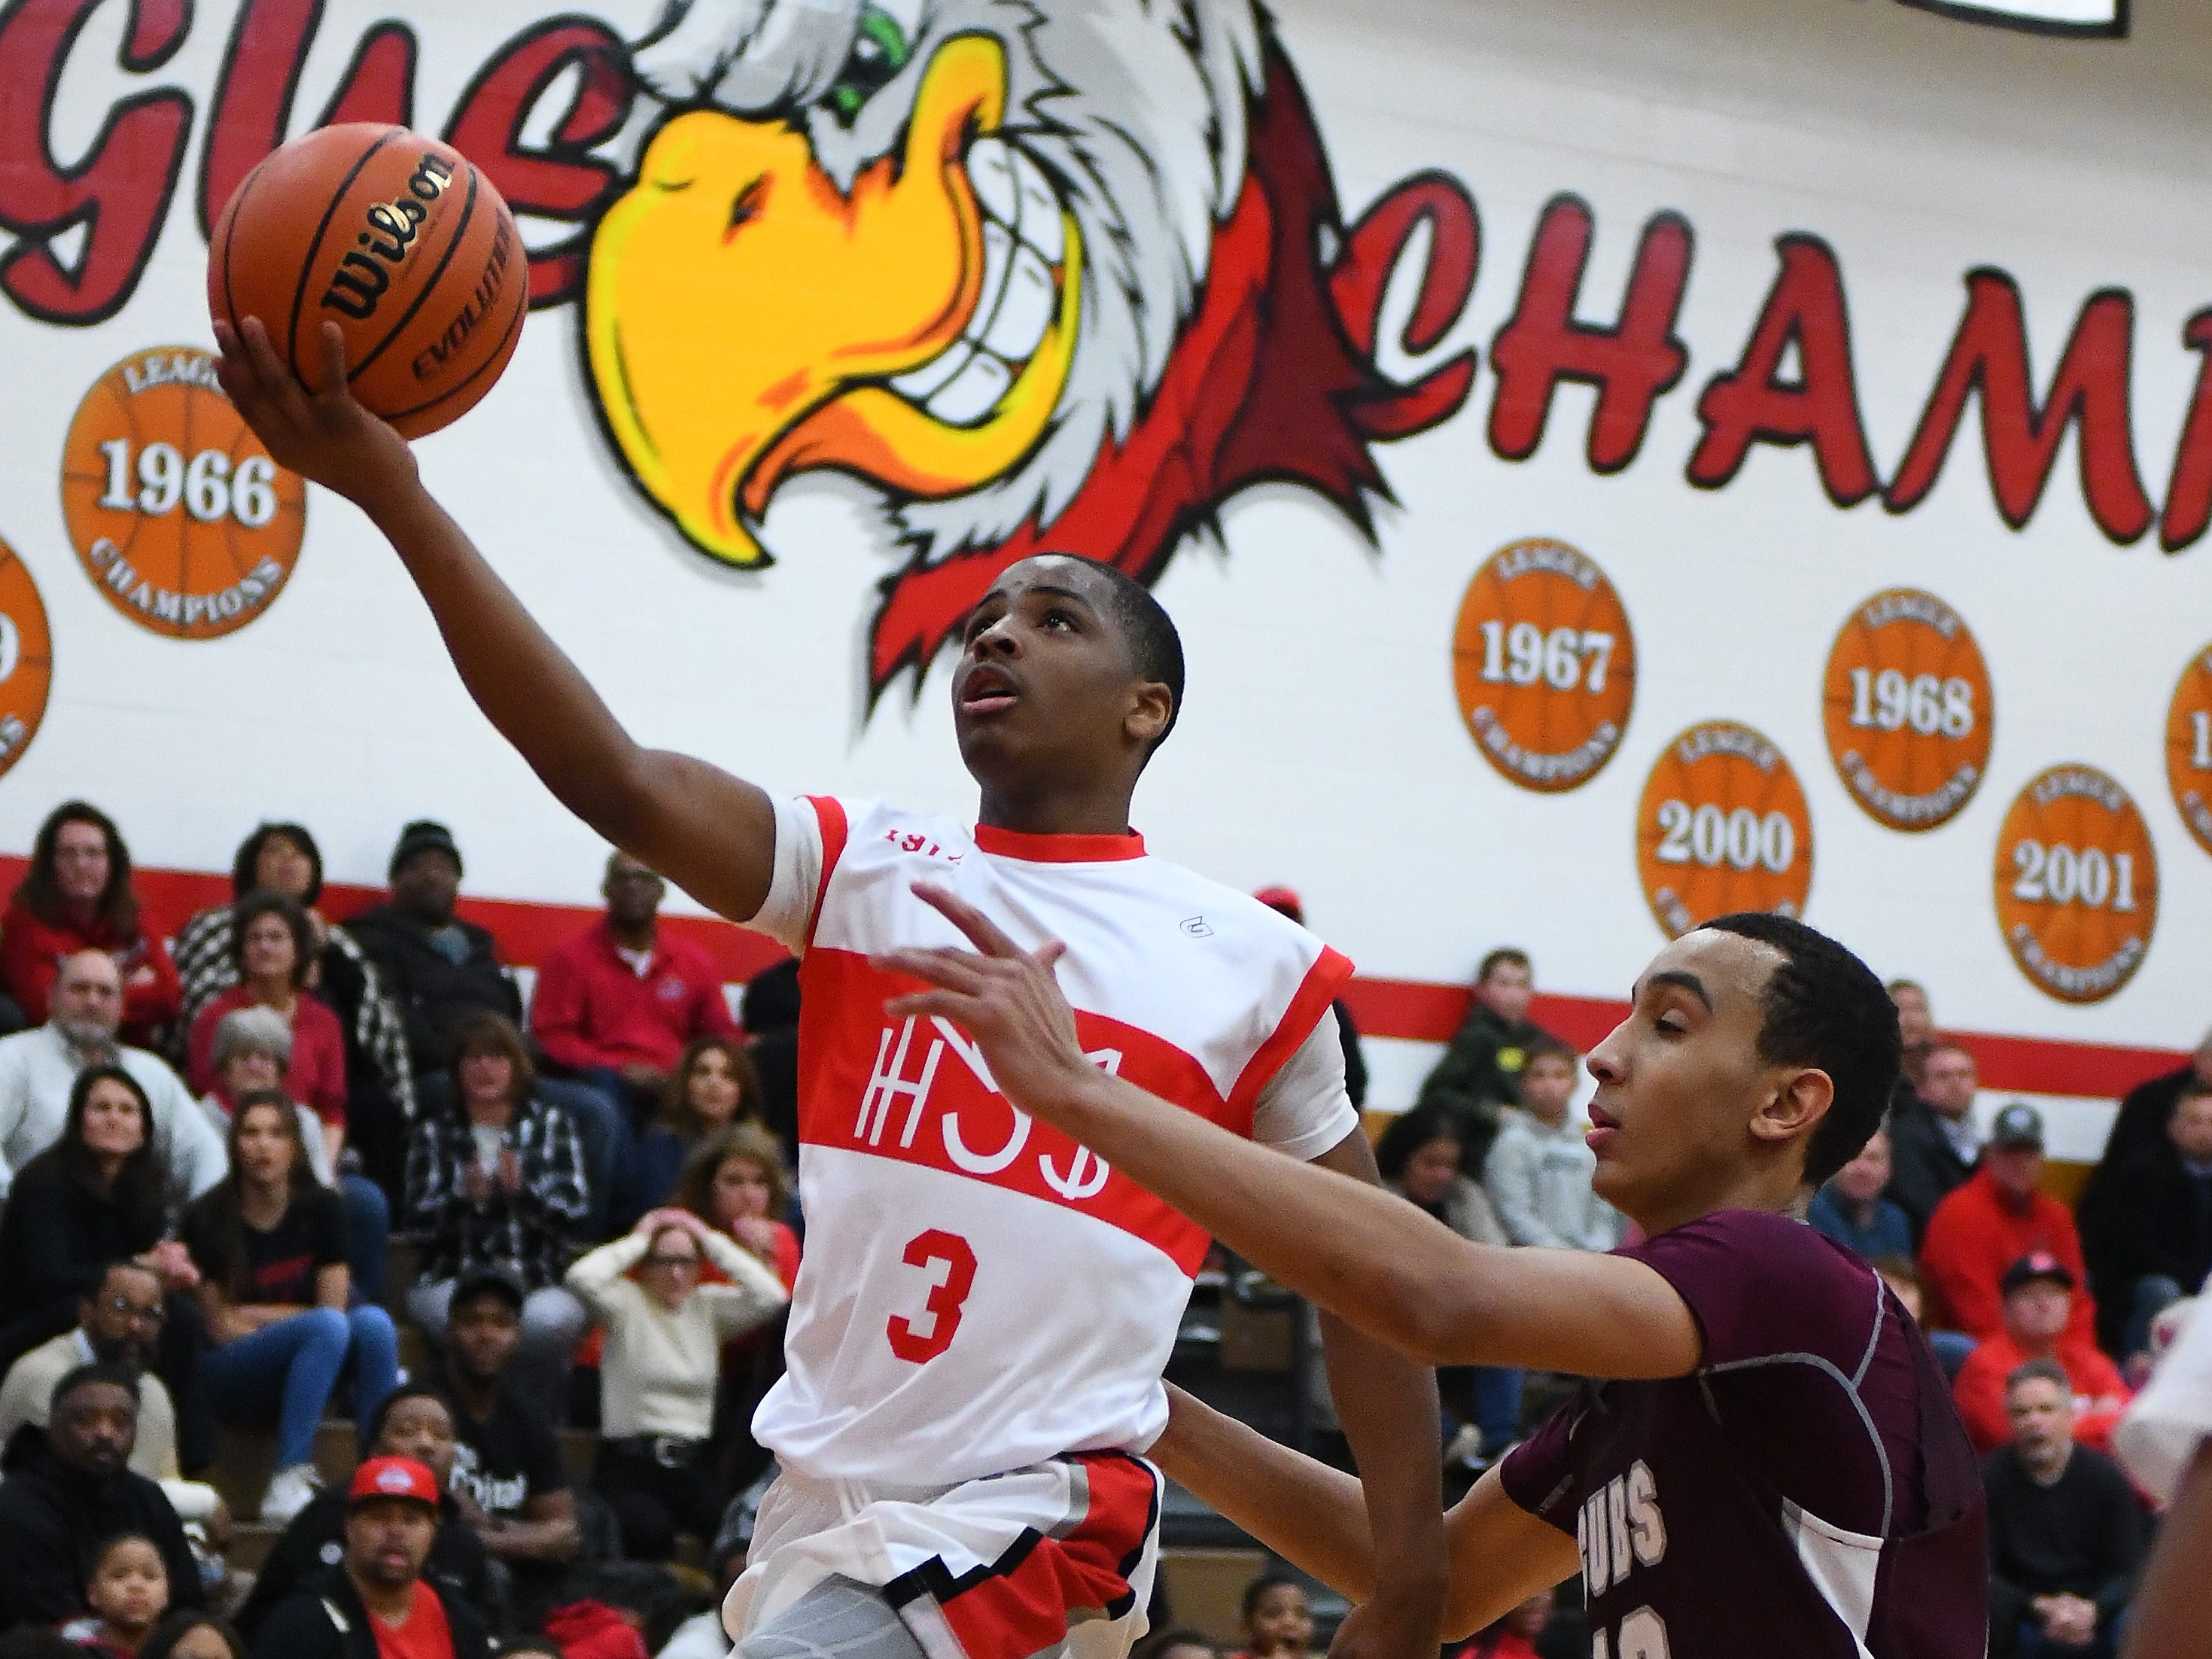 Kareem Rozier of Orchard Lake St. Mary's drives to the hoop against U-D Jesuit's J.T. Morgan in the second half.